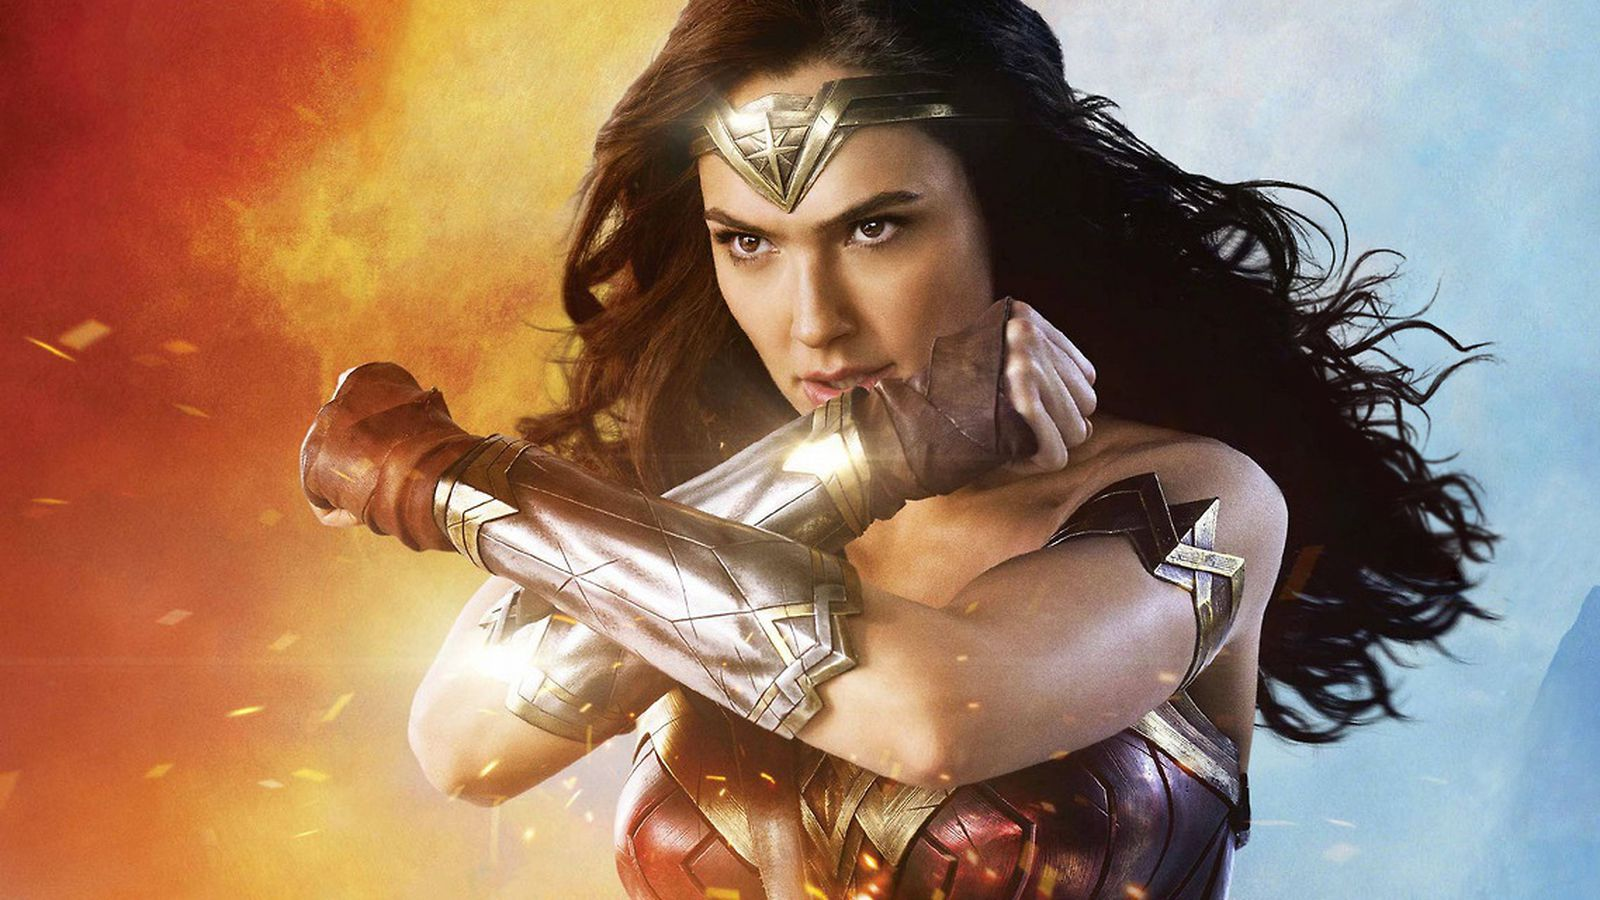 Wonder Woman S Dueling Origin Stories And Their Effect On The